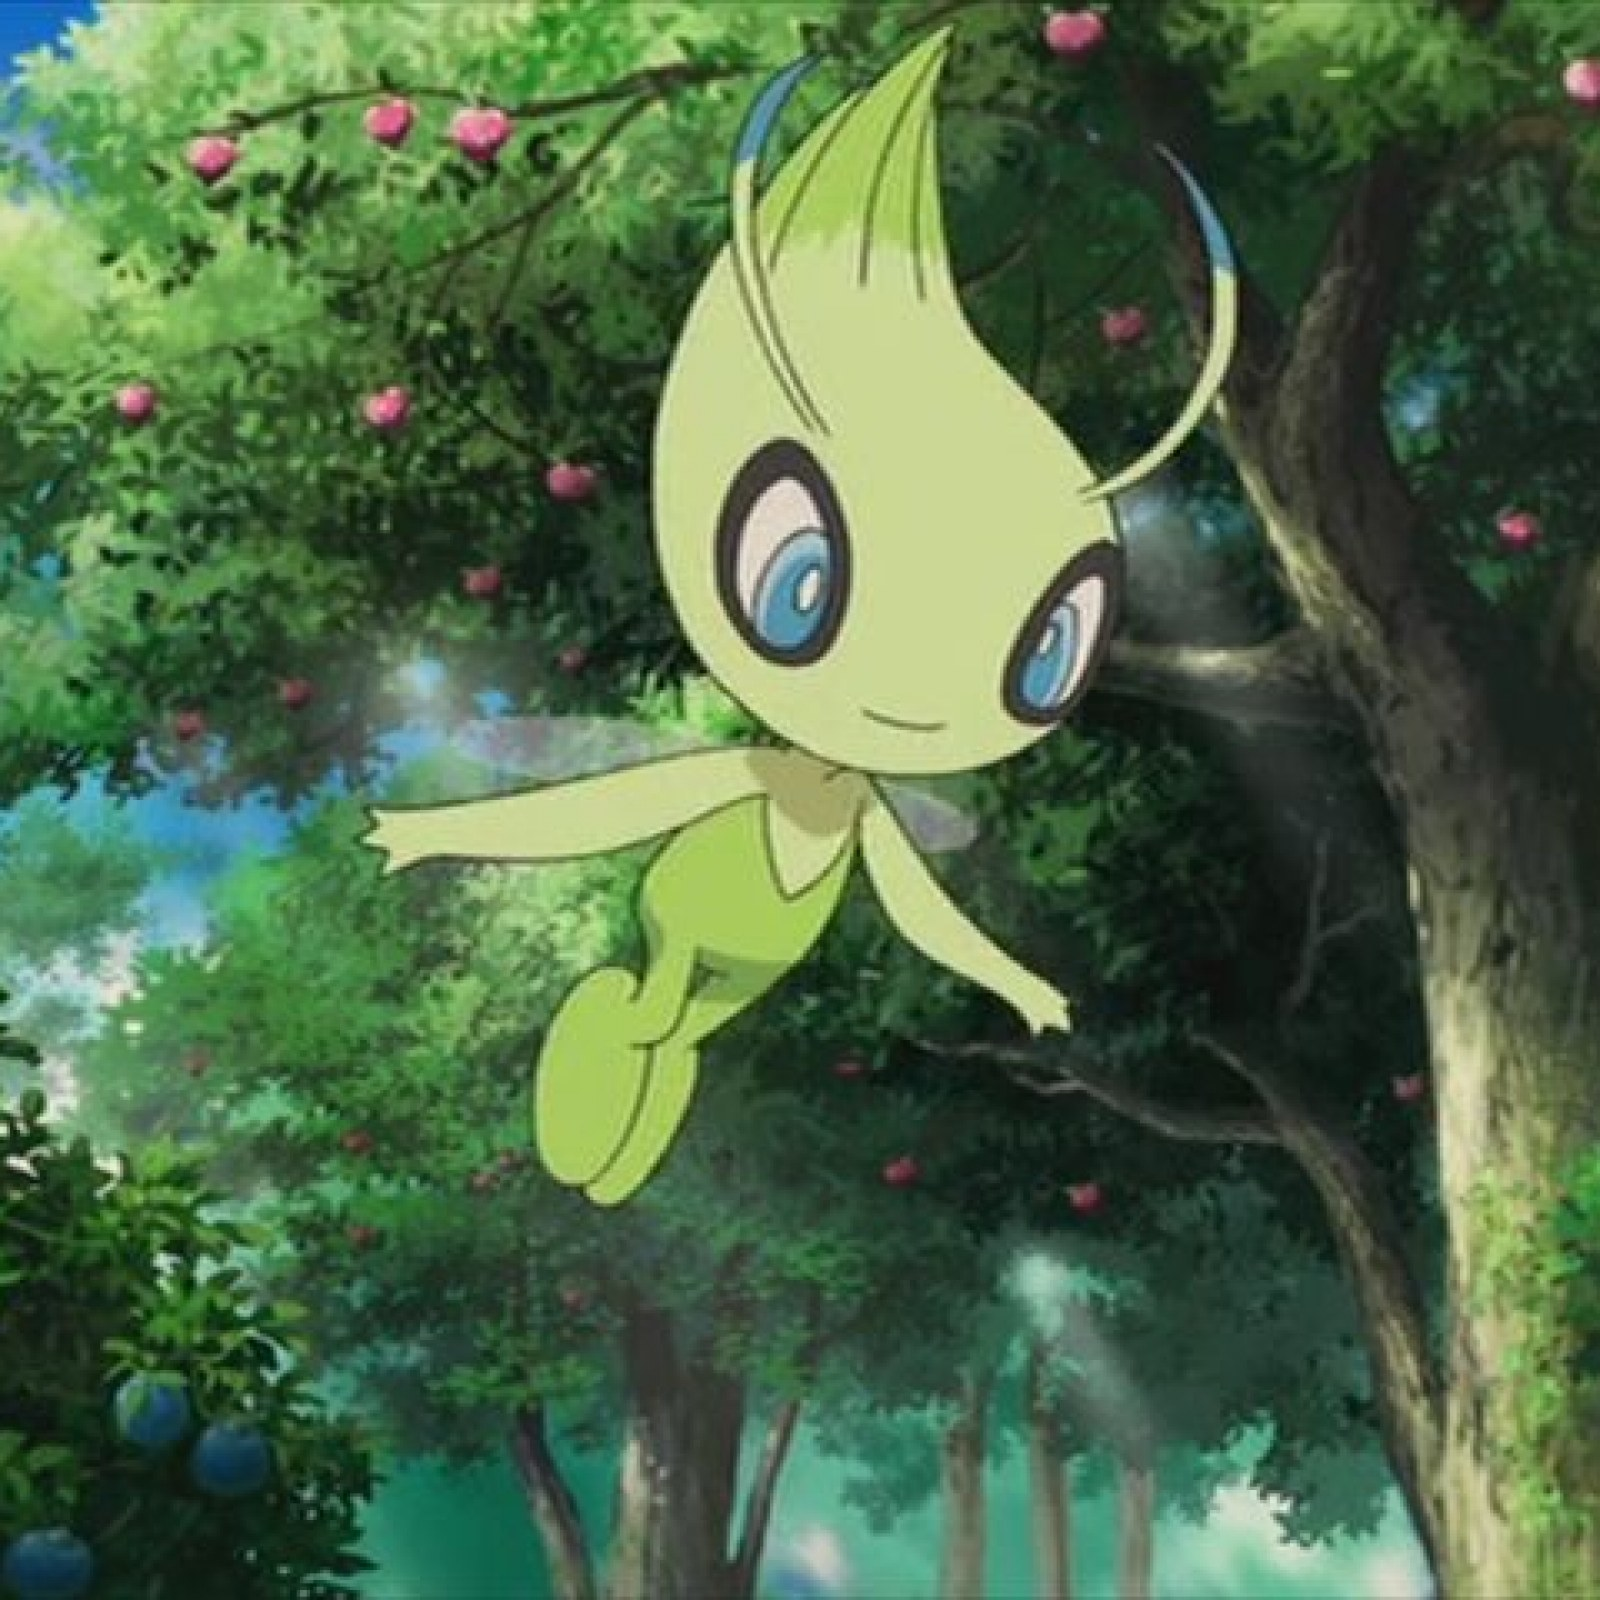 Pokémon Go' Celebi: New Research Task Coming Soon